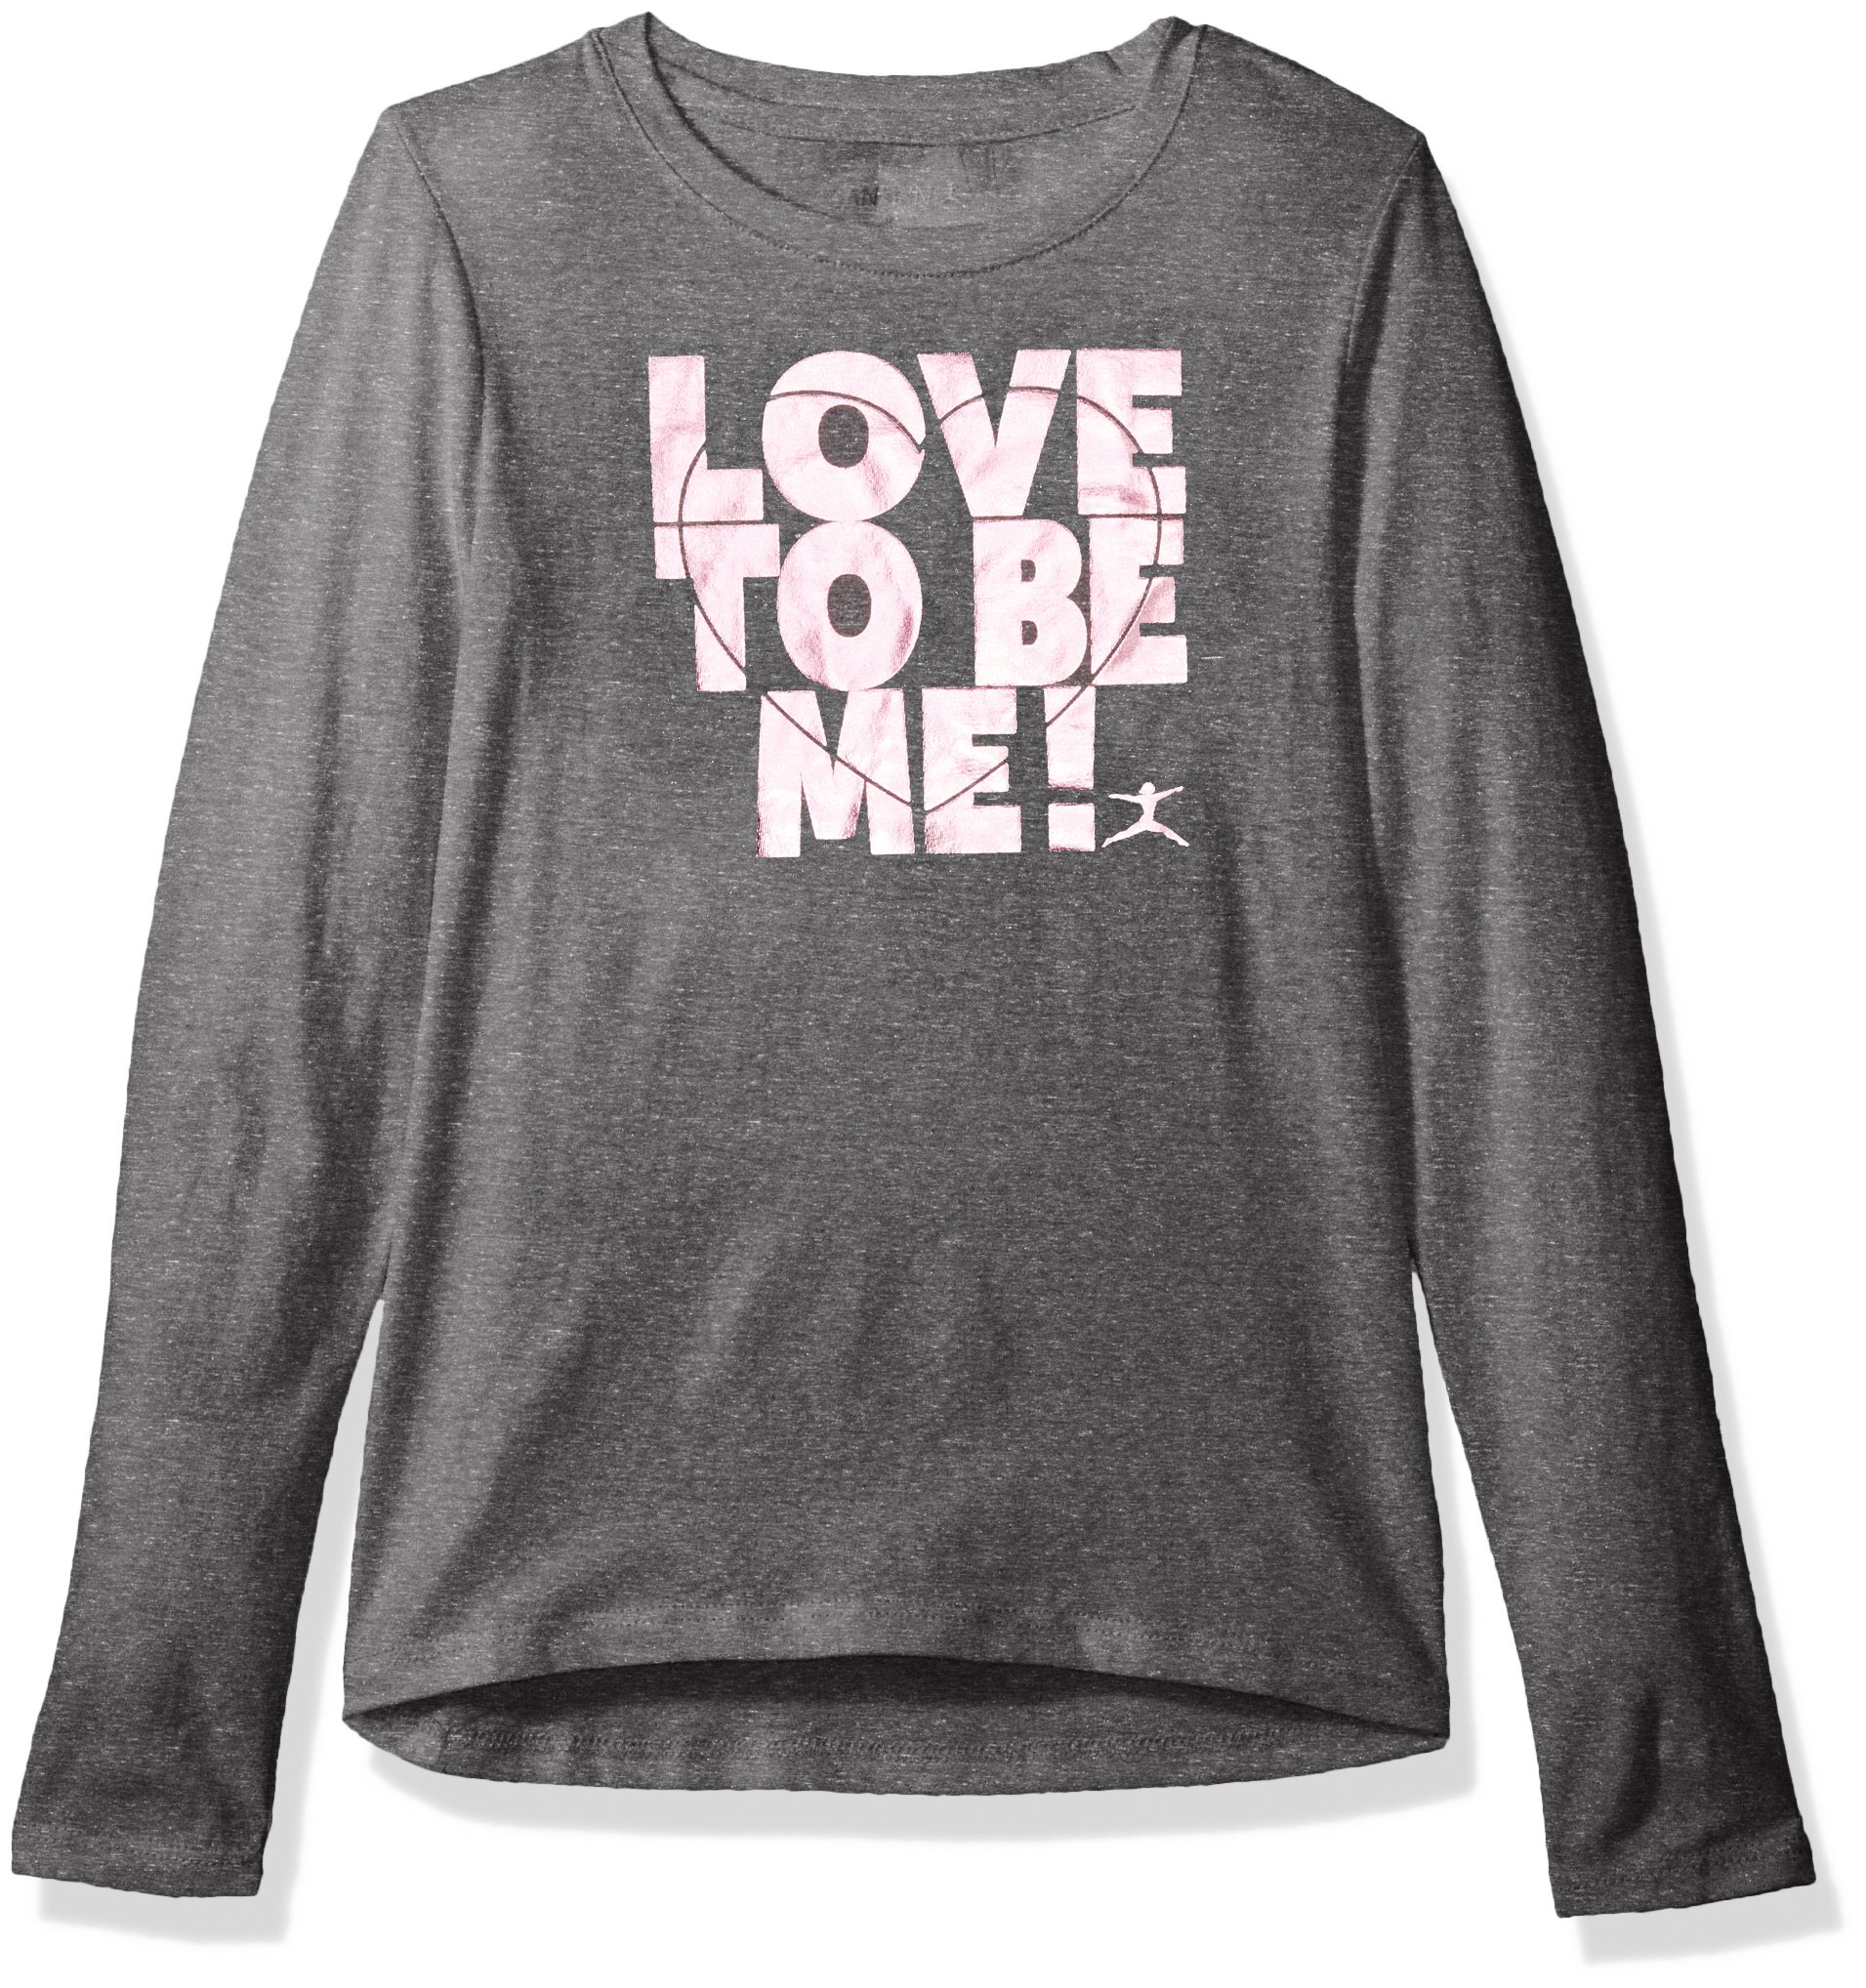 Danskin Big Girls' Long Sleeve Graphic Tee, Love to Be Me Charcoal Grey Heather, M